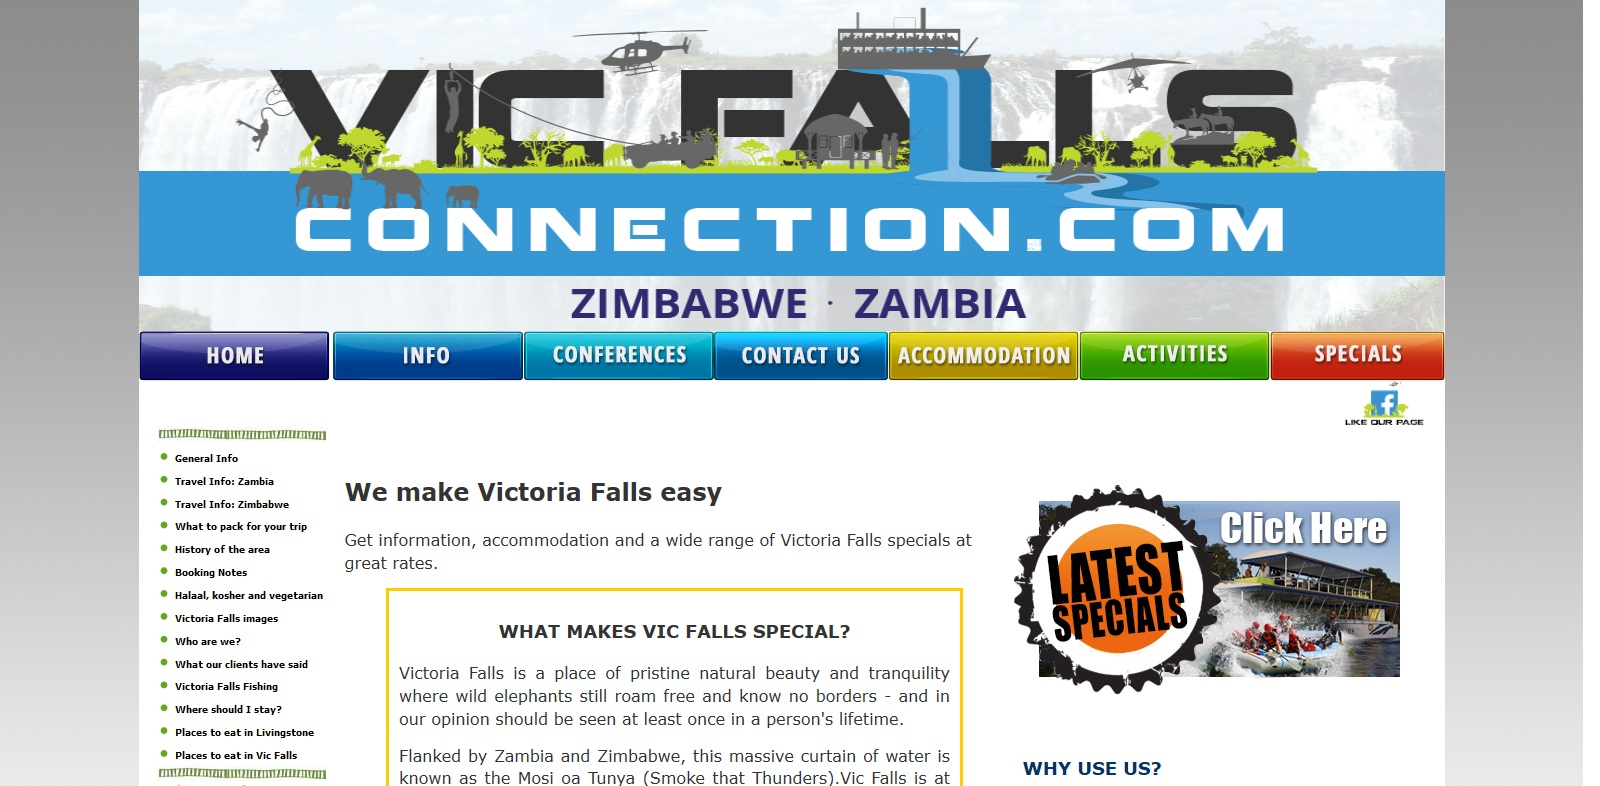 /www.vicfallsconnection.com